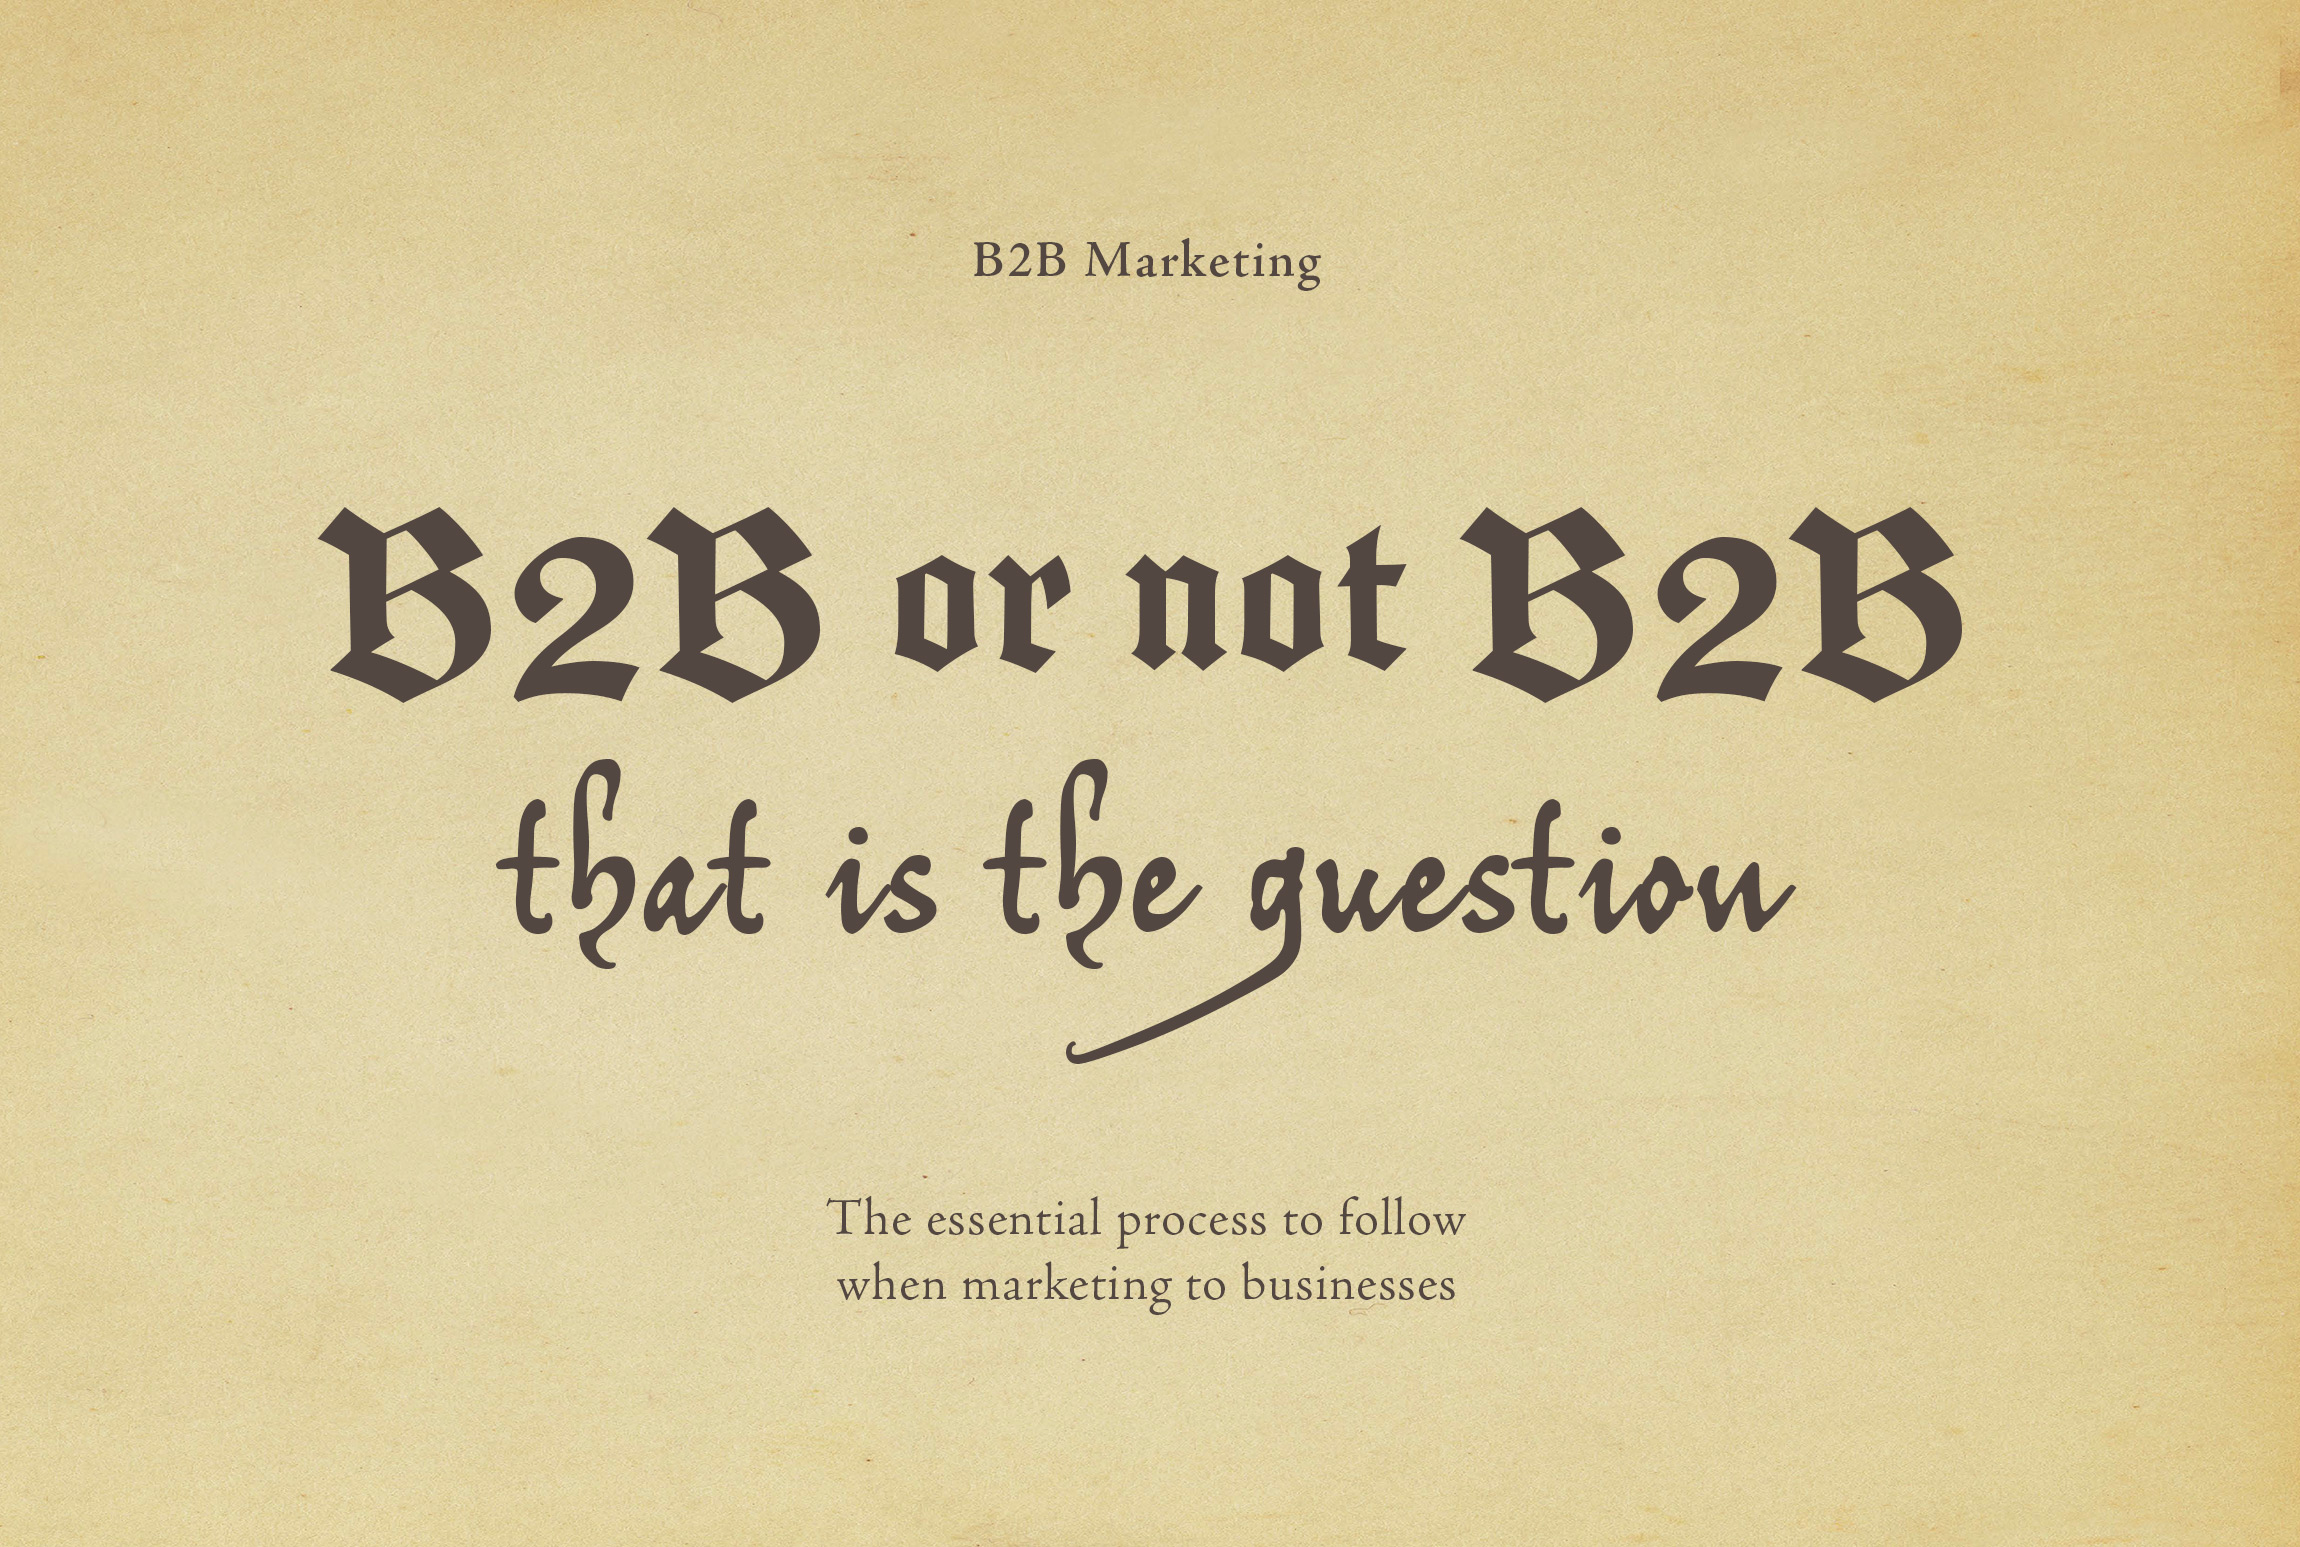 B2B Marketing - the essential process to follow when marketing to businesses